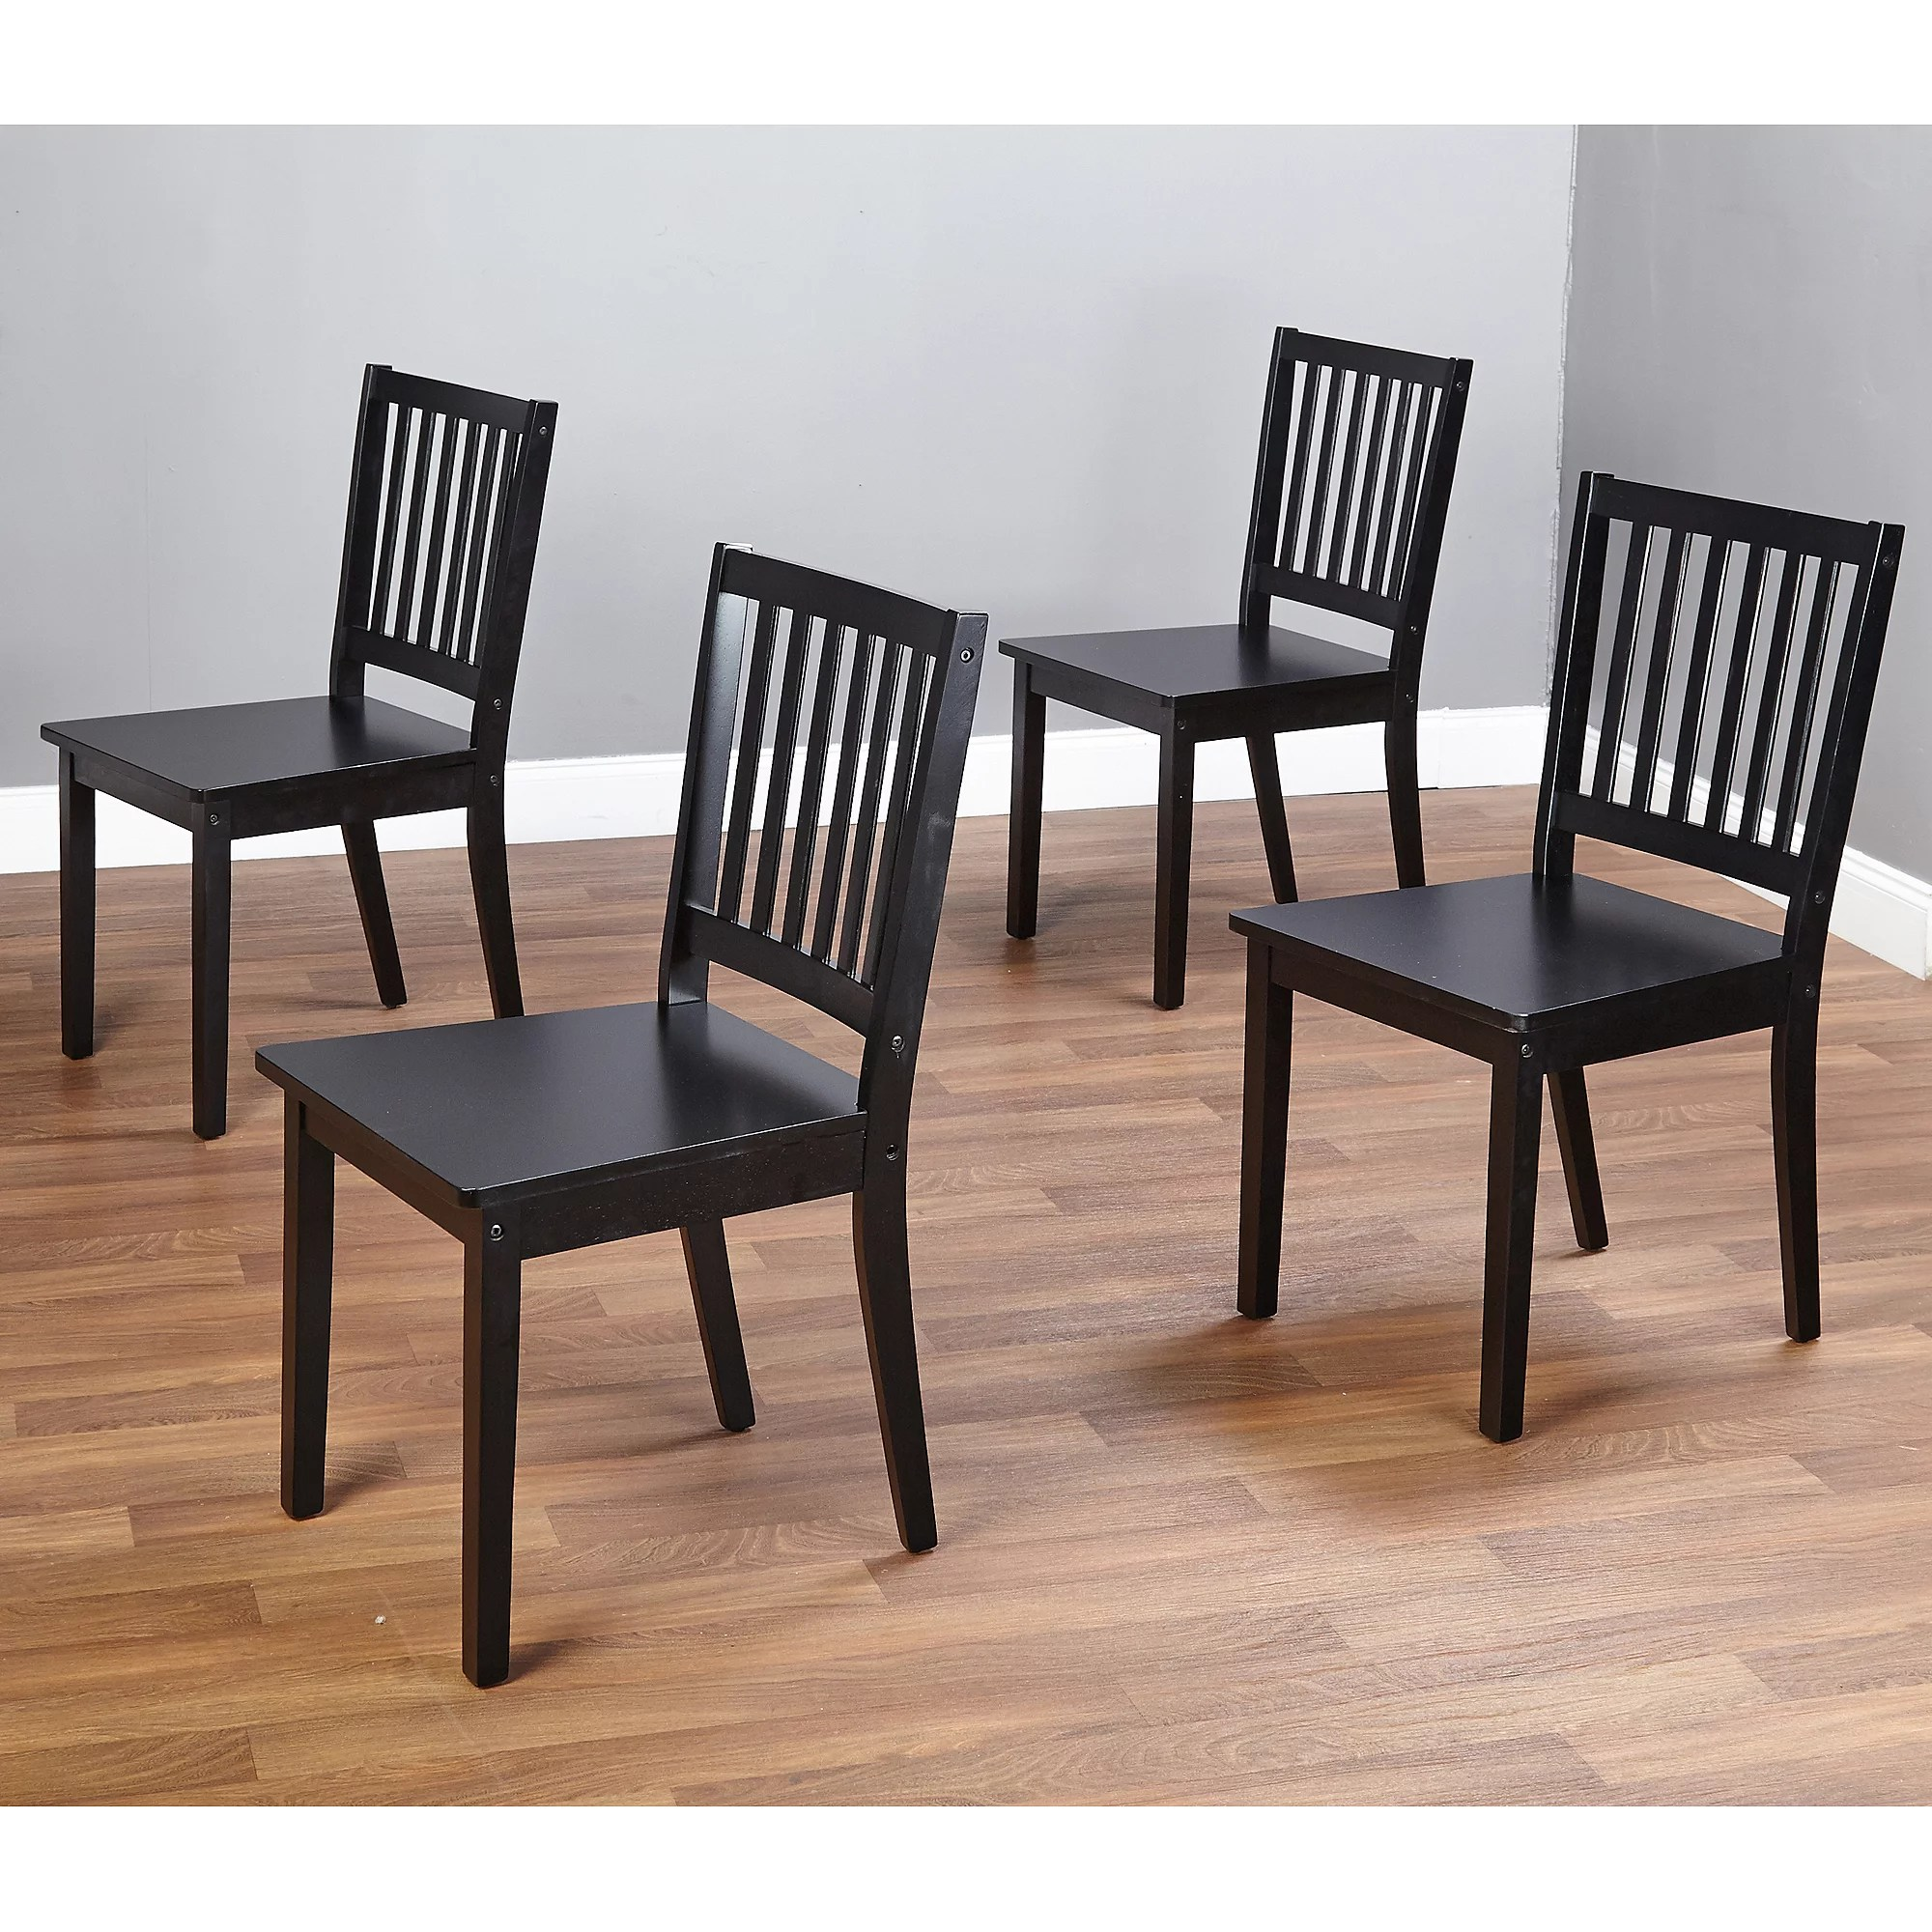 kitchen chairs walmart Shaker Dining Chairs Set of 4 Black